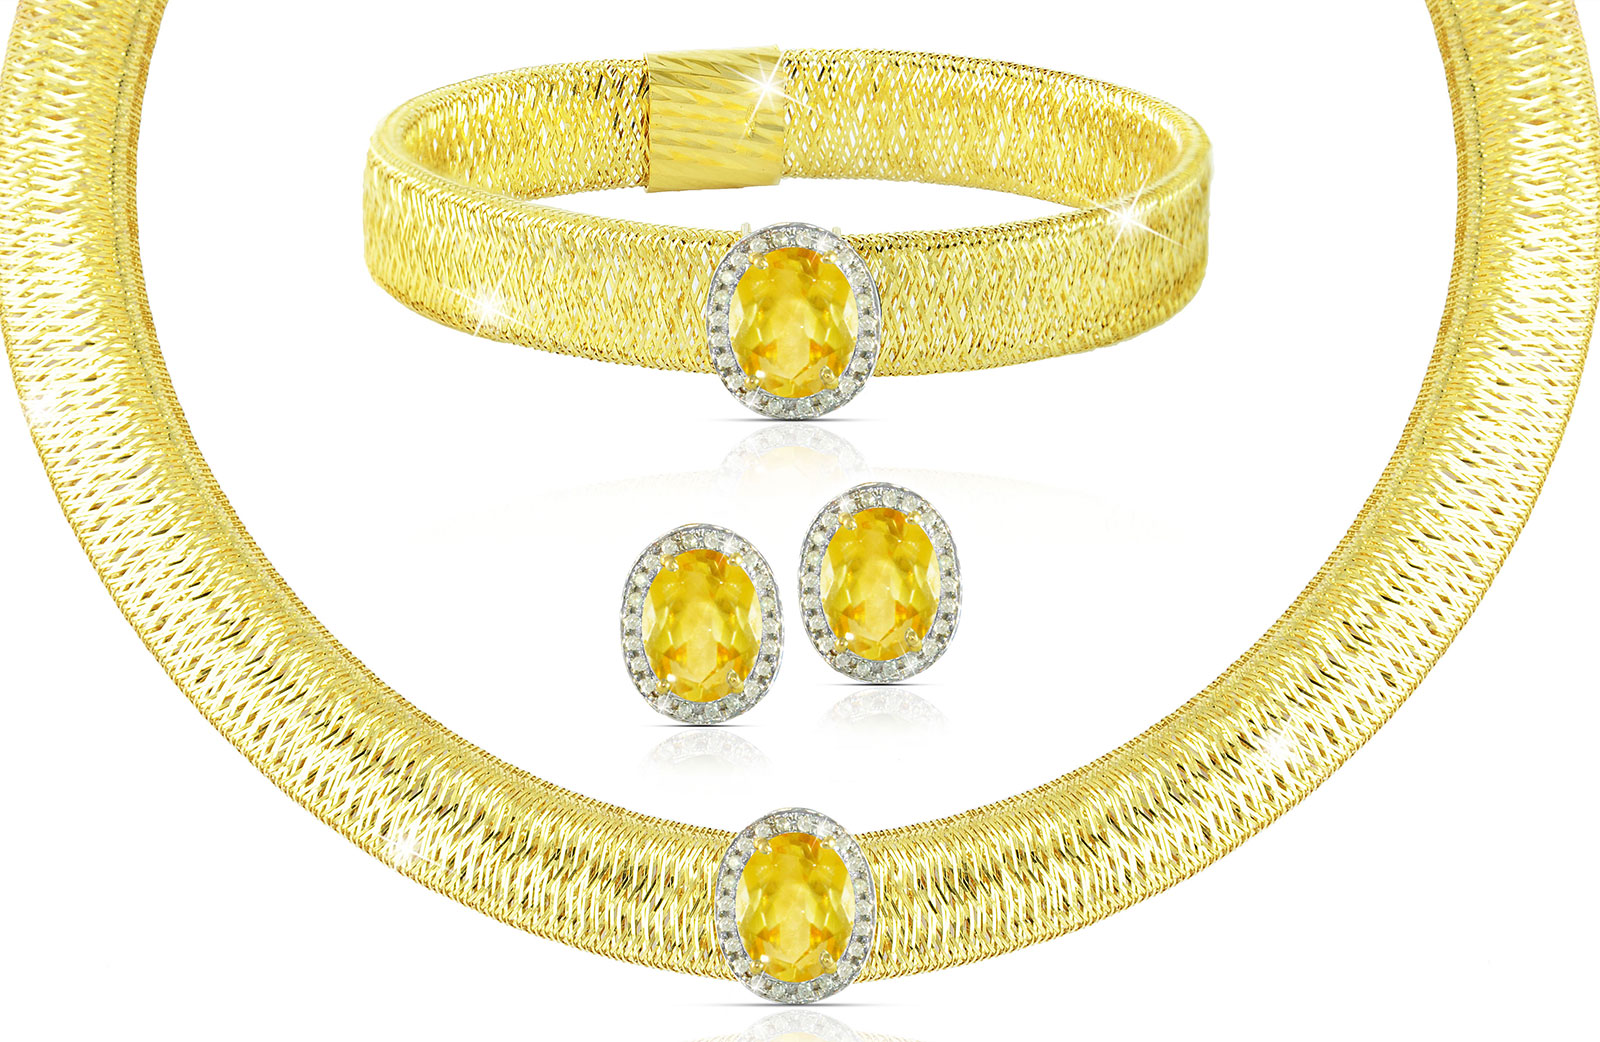 Vera Perla 18K  Gold 0.52Cts Genuine Diamonds and 10mm Genuine Citrines Necklace, Bracelet and earrings Set